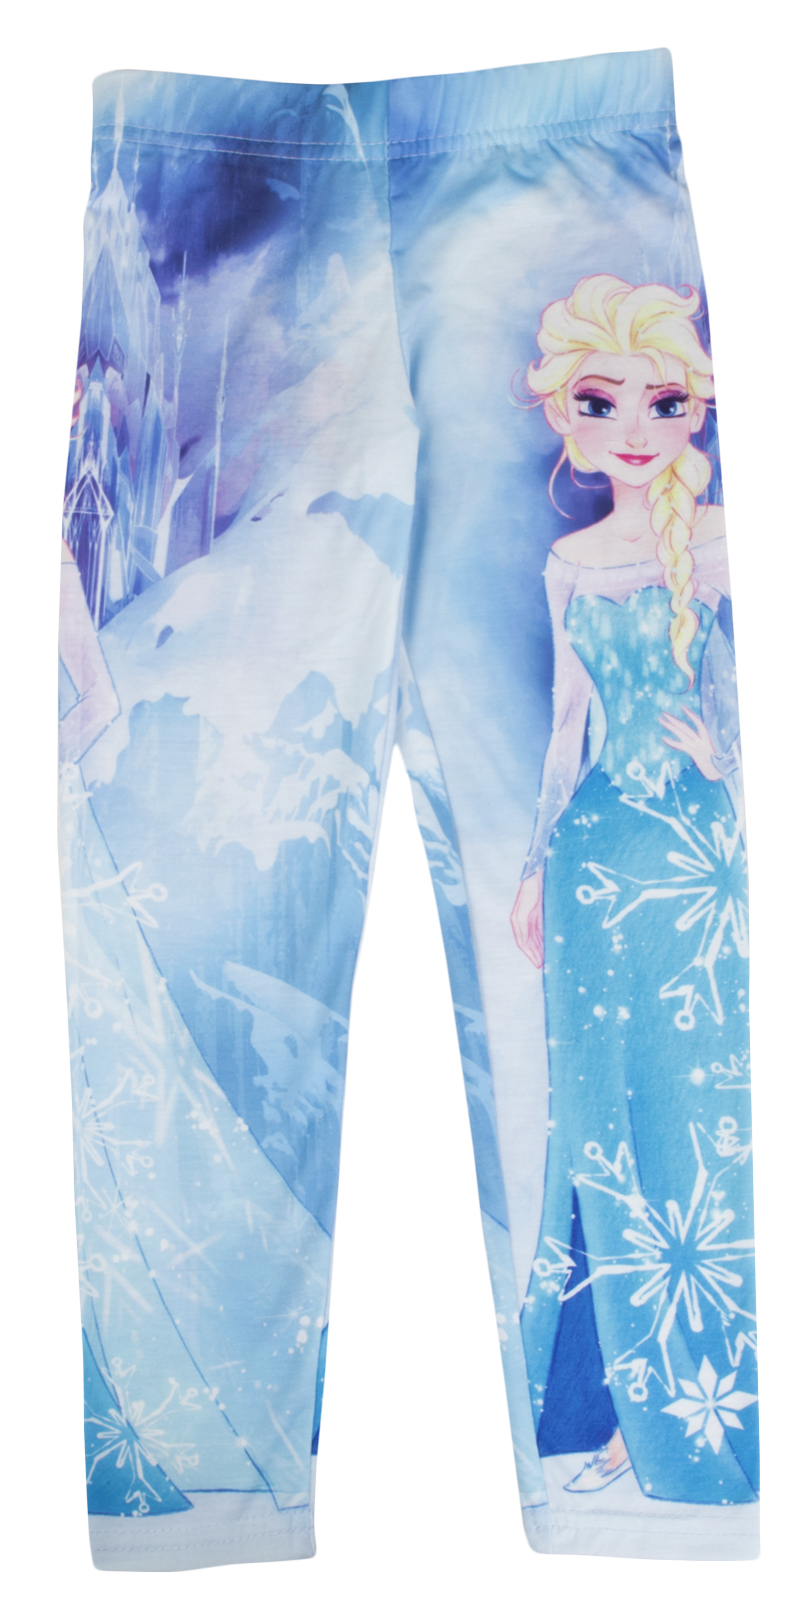 We carry a wide variety of Disney loungewear for women that includes long sleeve tops and pajama pants, footie pajamas, fleece wear, sleep shorts, chemise nightgowns, dorm sets and sweatpants. These feature all of your Disney favorites and classics like Tinkerbell, .